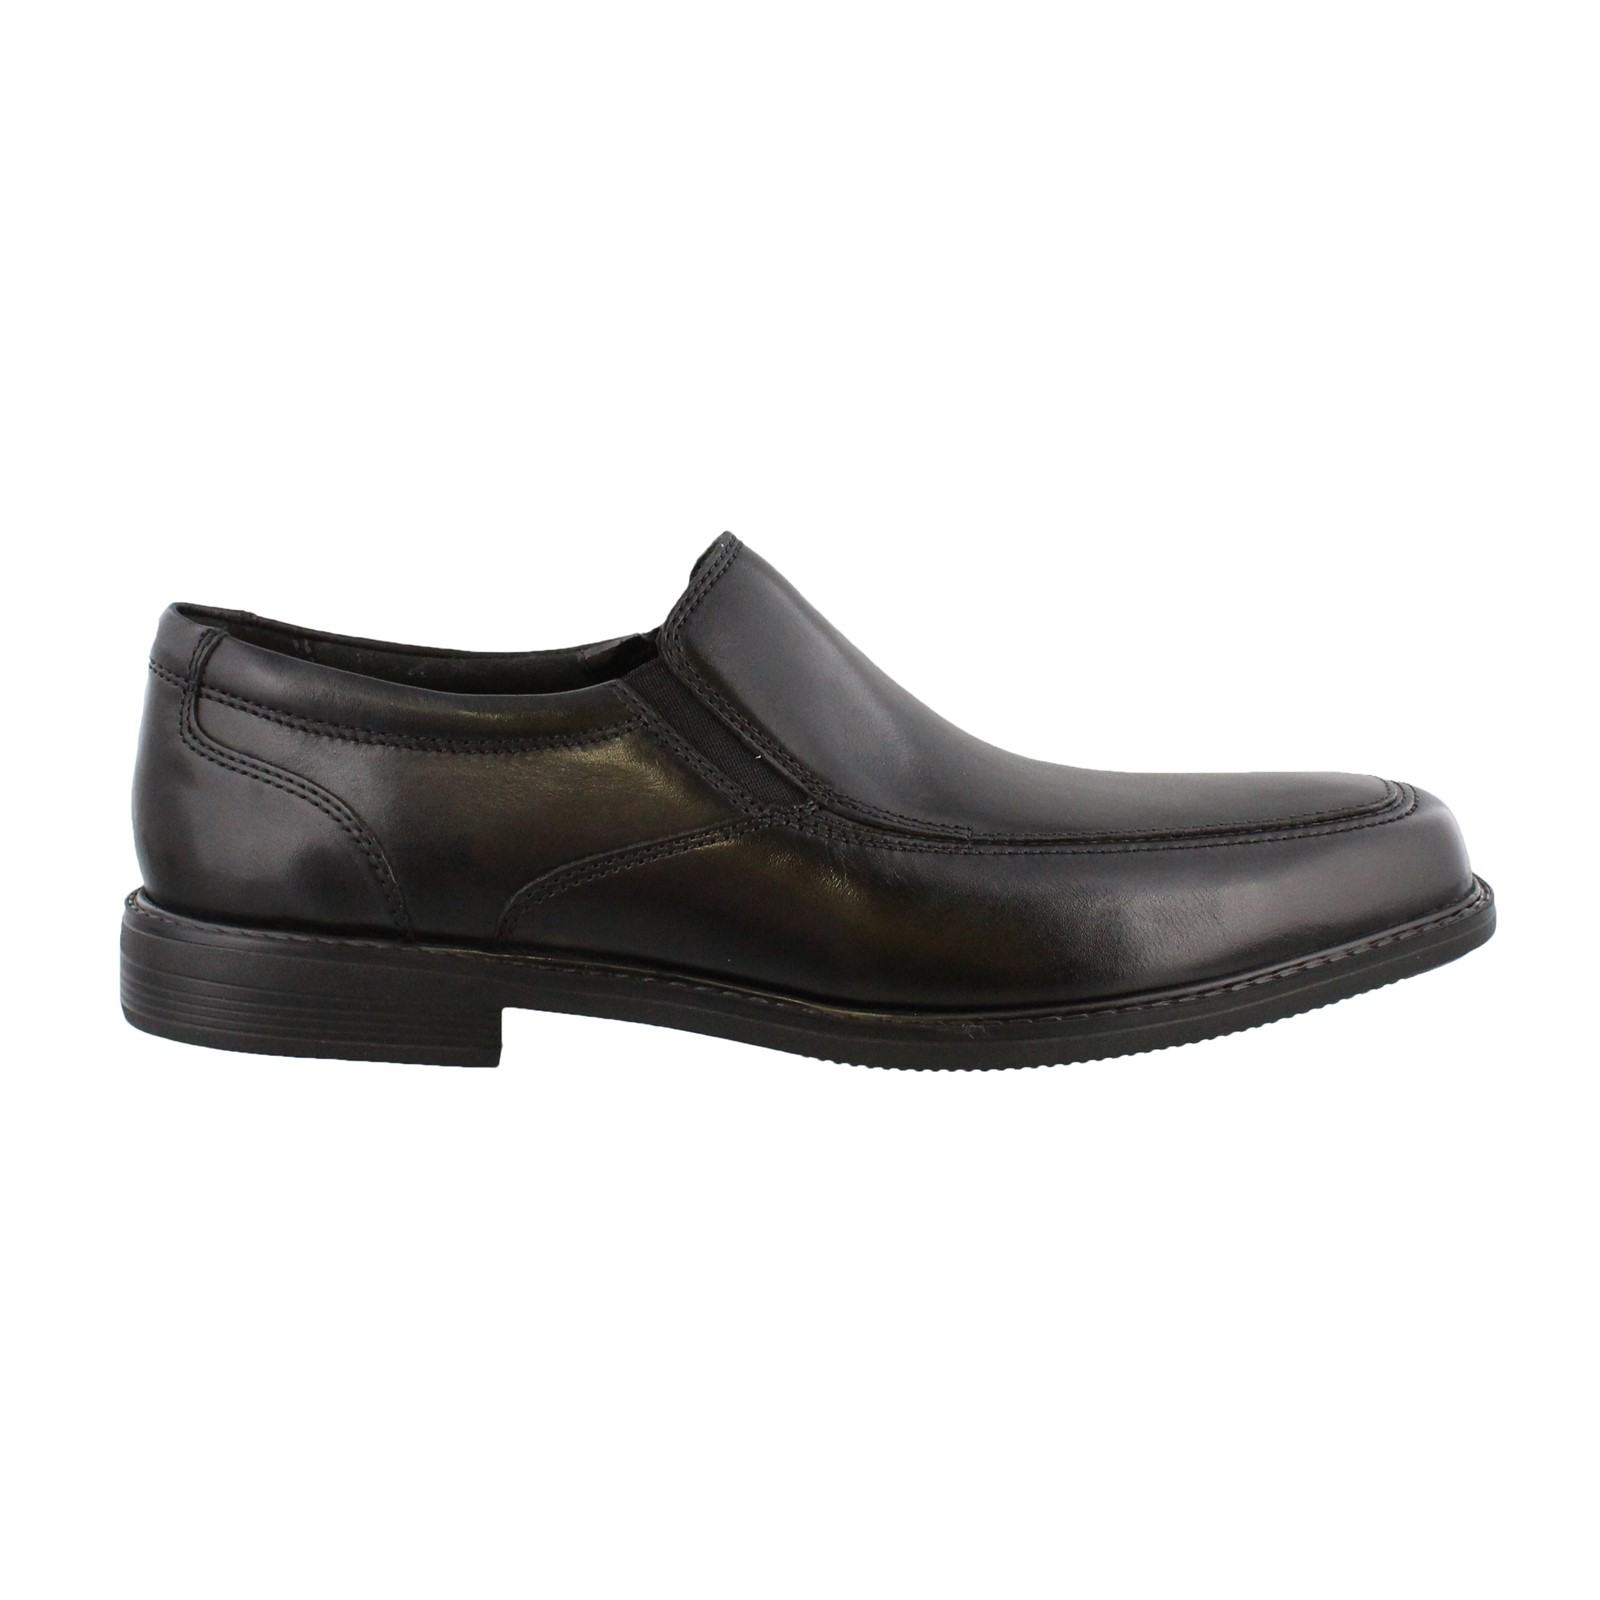 Men's Bostonian, Mendon Easy Slip on Shoes